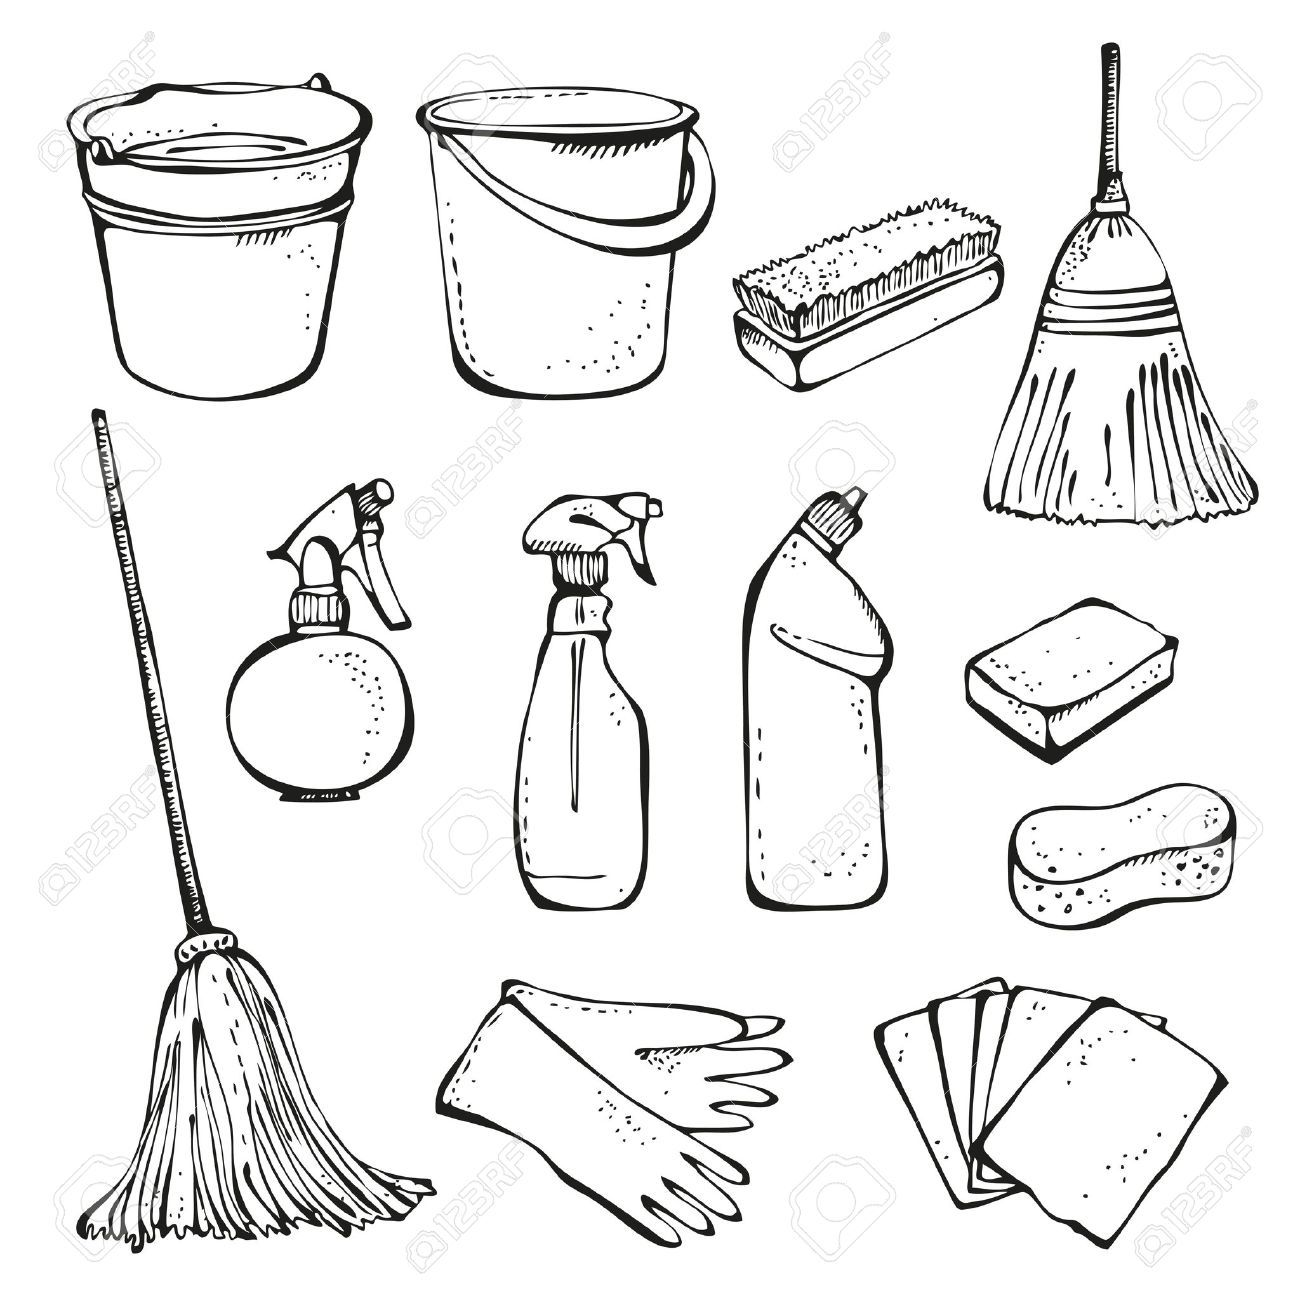 Home Office Cleaning Supplies Doodle Clip Art Icons Stock Vector